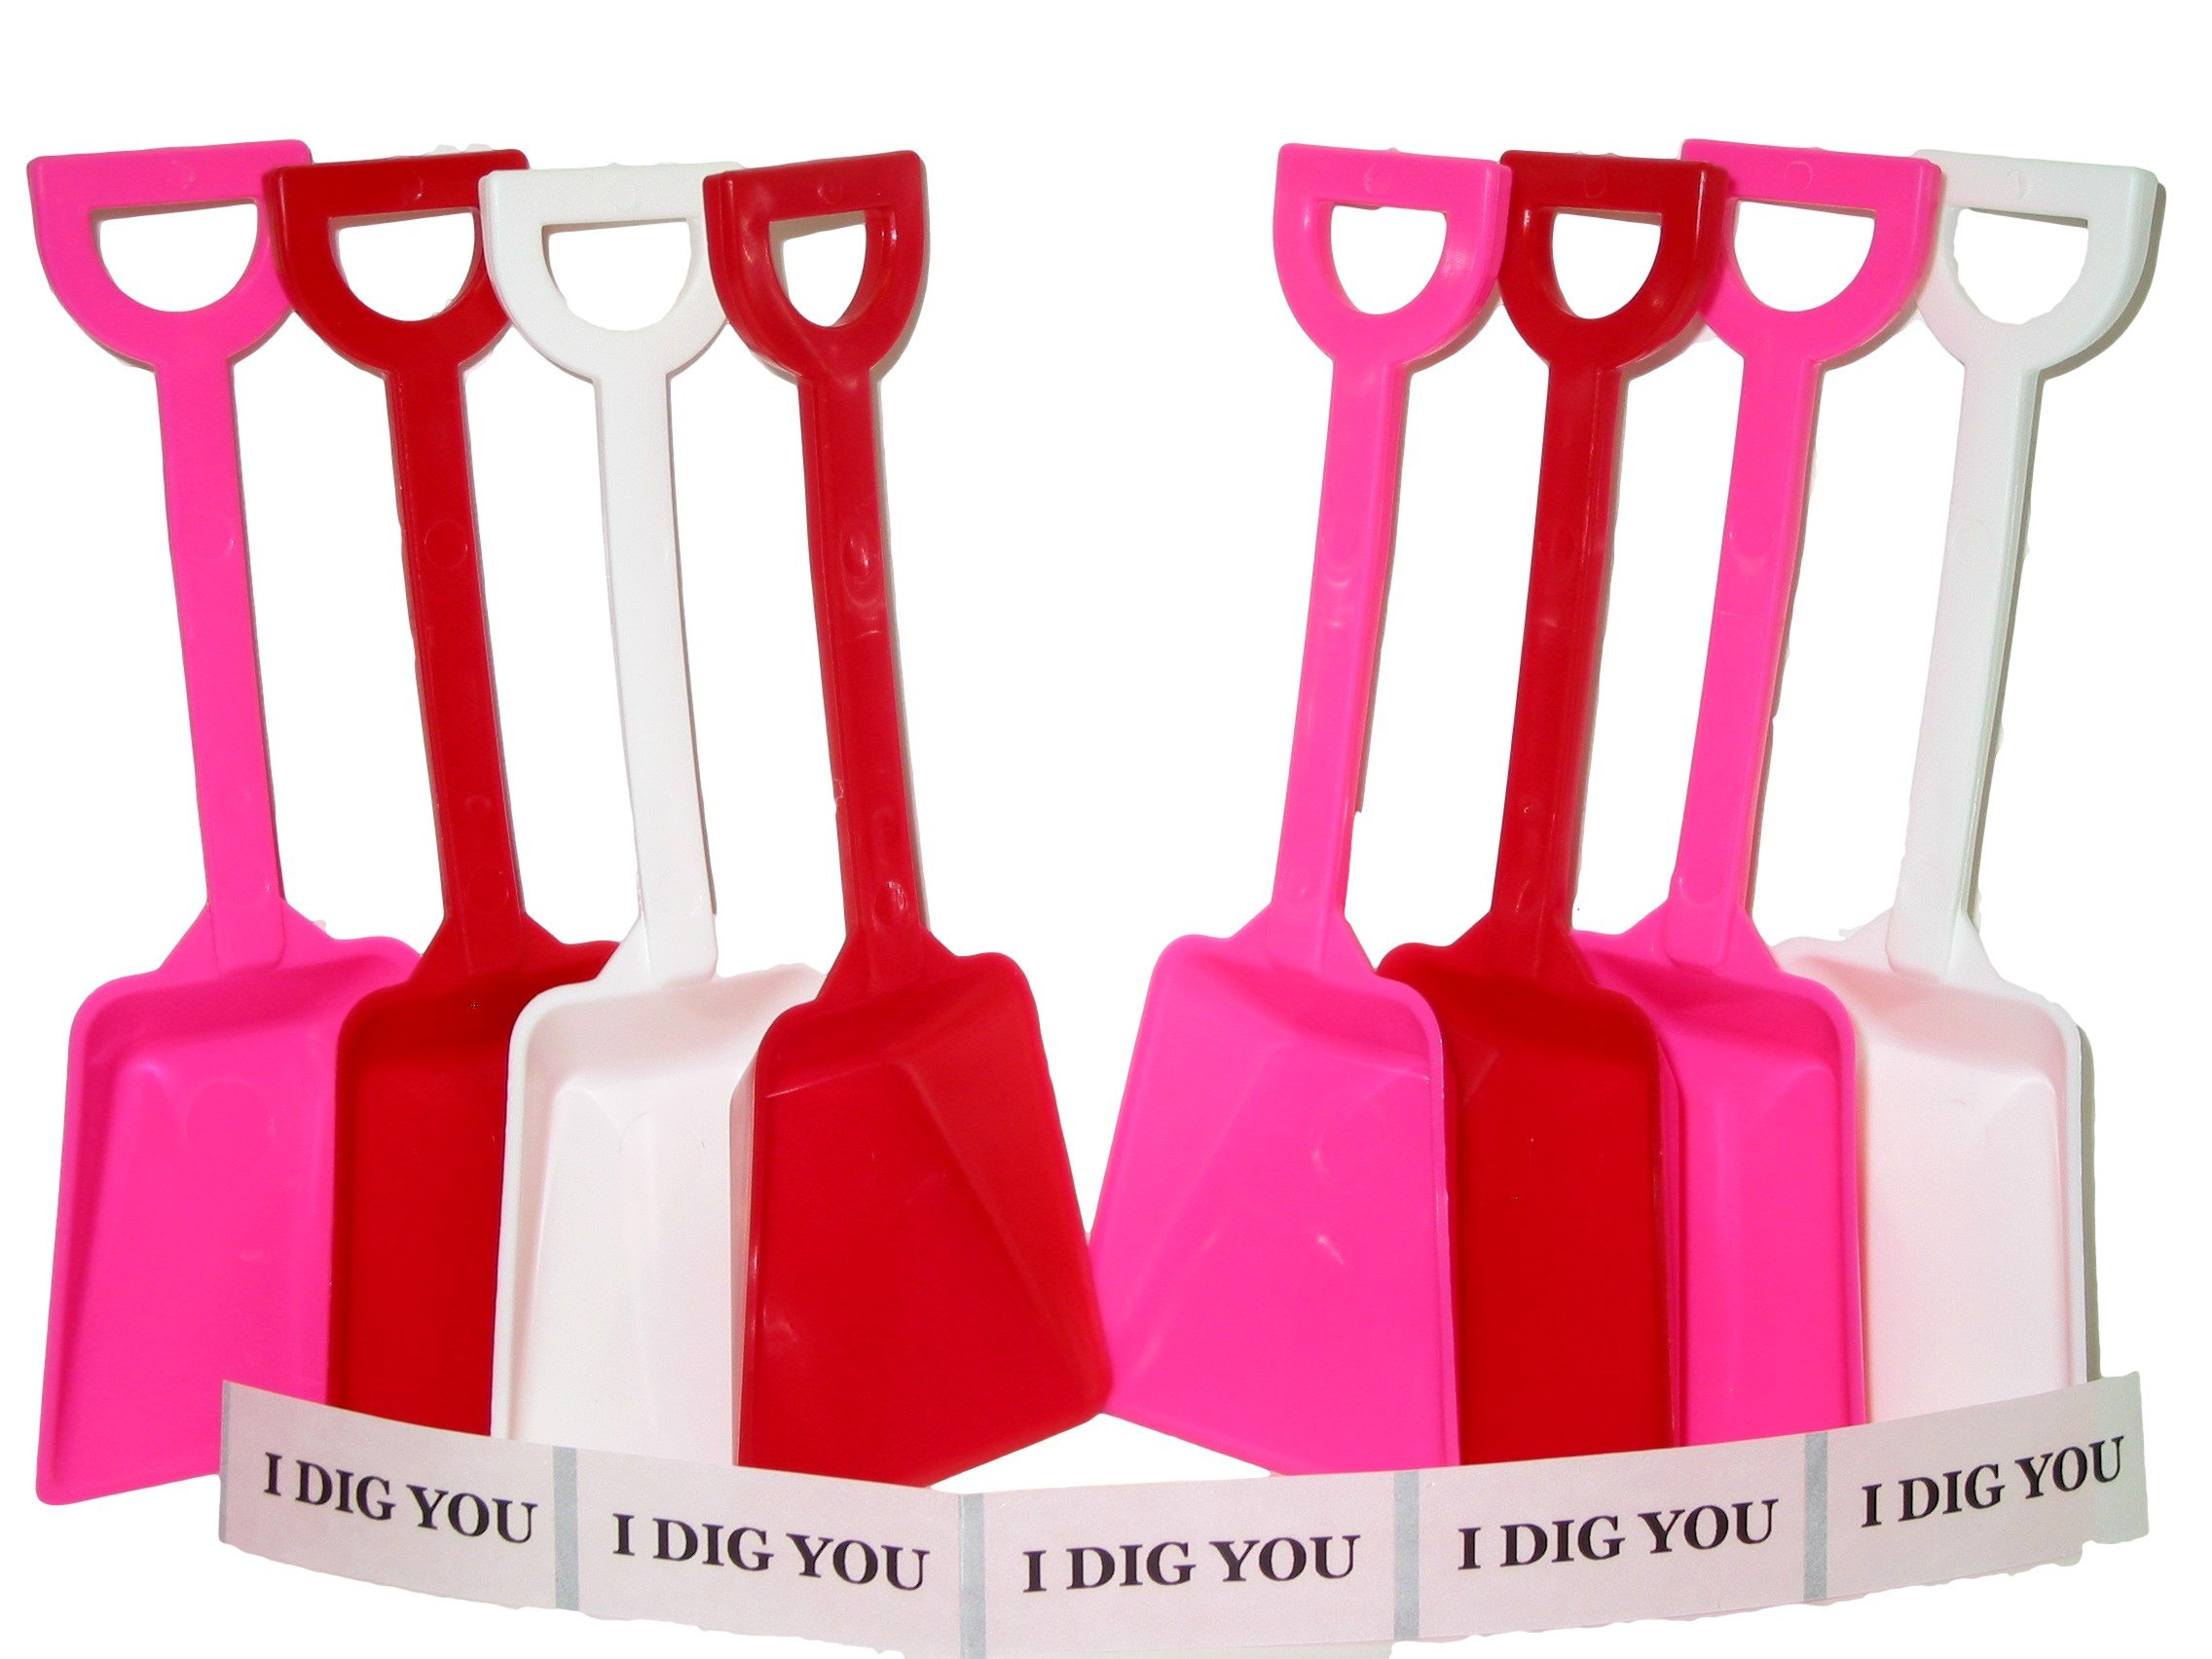 Toy Plastic Shovels Red White & Pink, 24 Pack, 7 Inches Tall, 24 I Dig You Stickers by Jean's Plastics